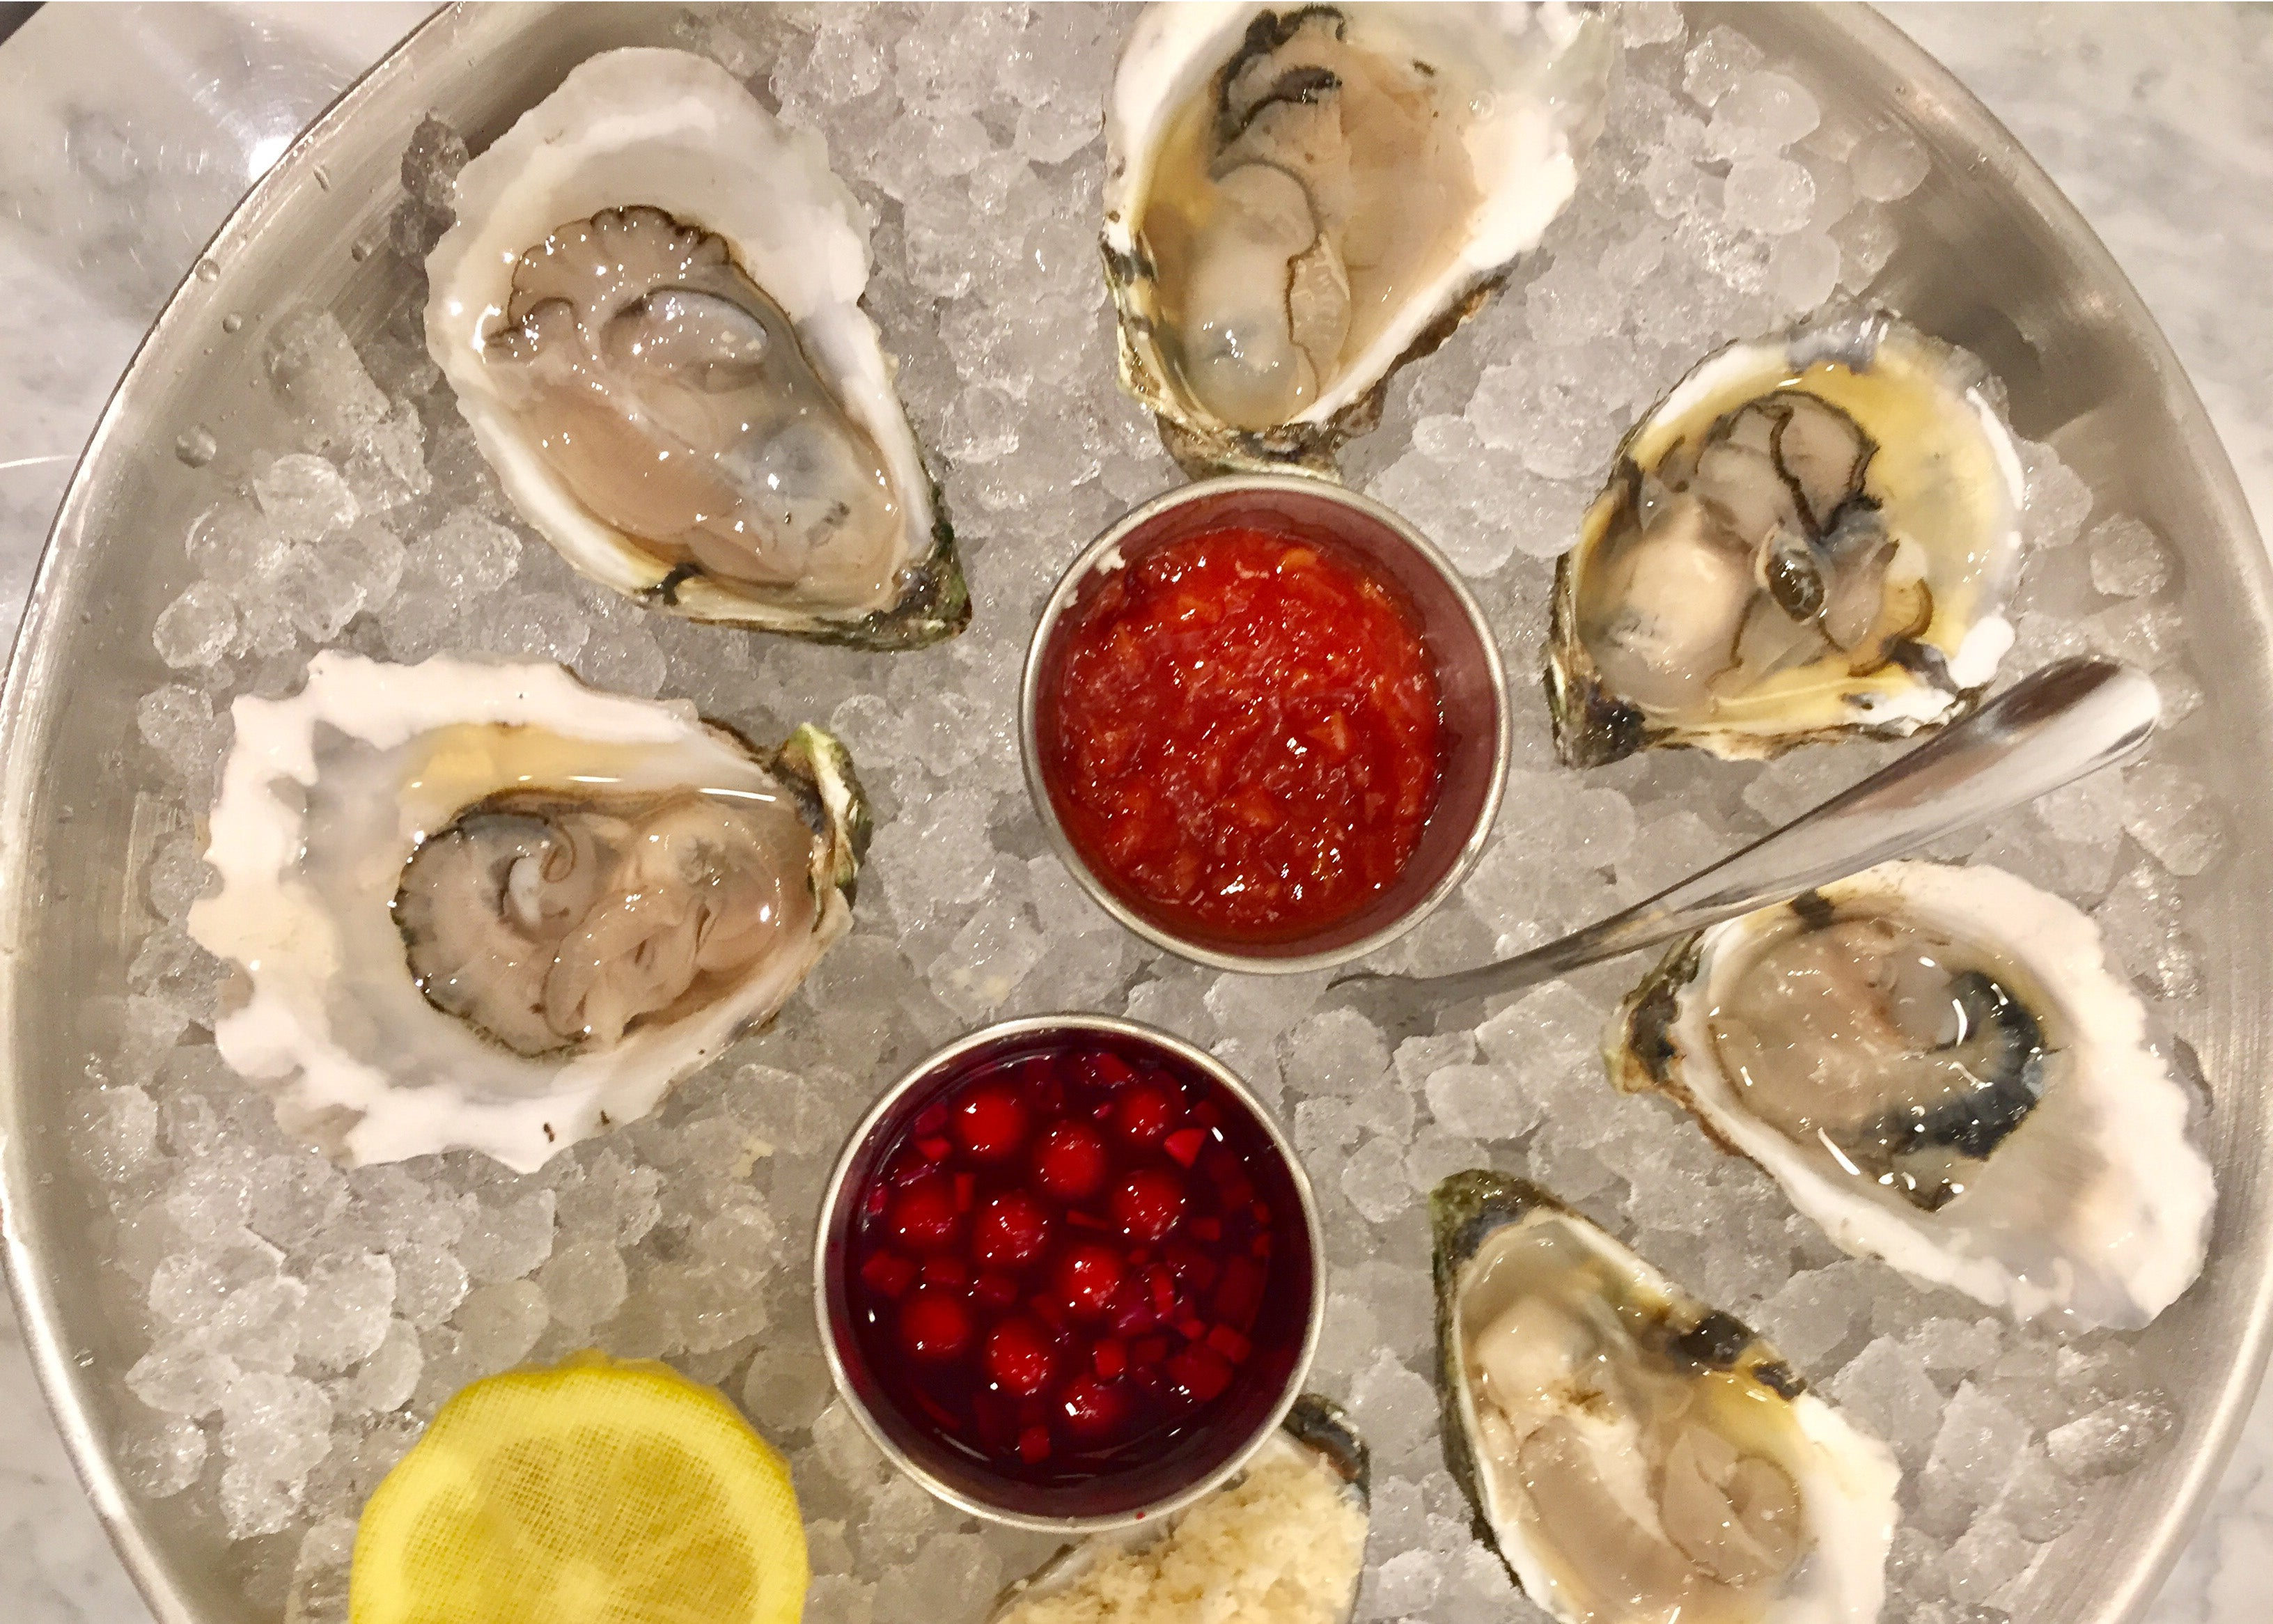 An oyster platter at The Oyster Club